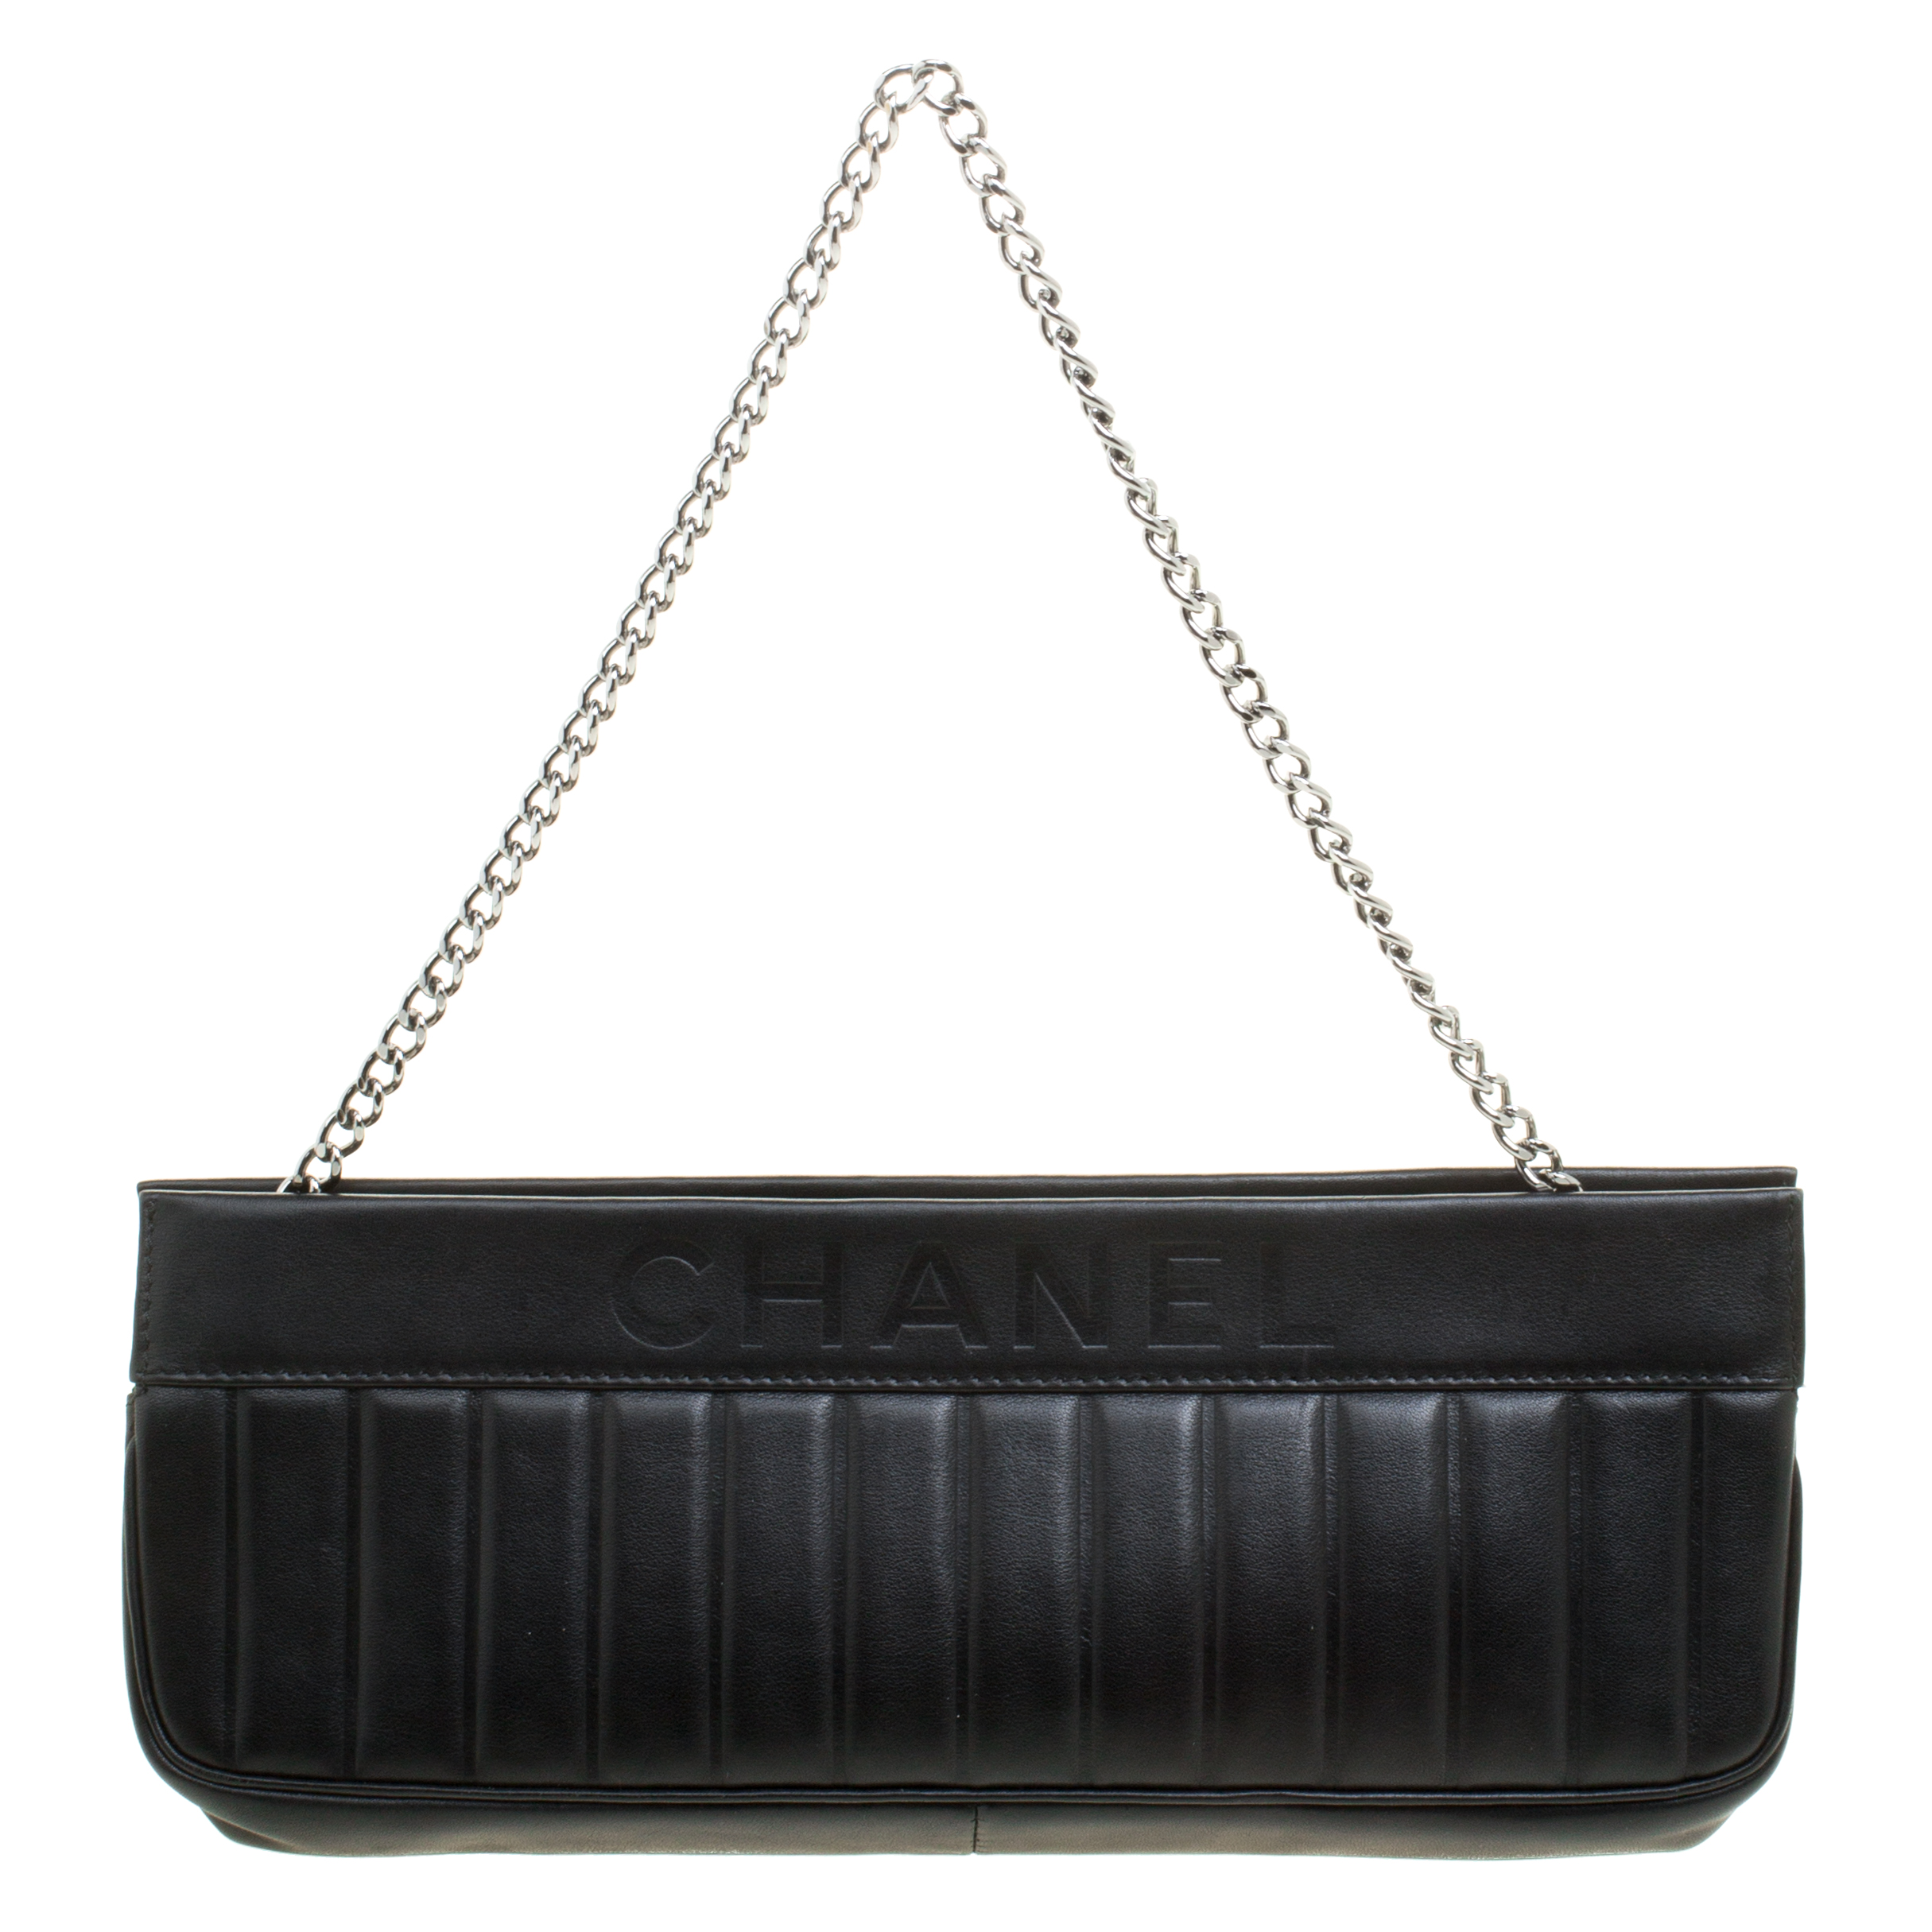 d50c1edaa240 ... Buy Chanel Black Vertical Quilted Leather Chain Clutch 110774 at